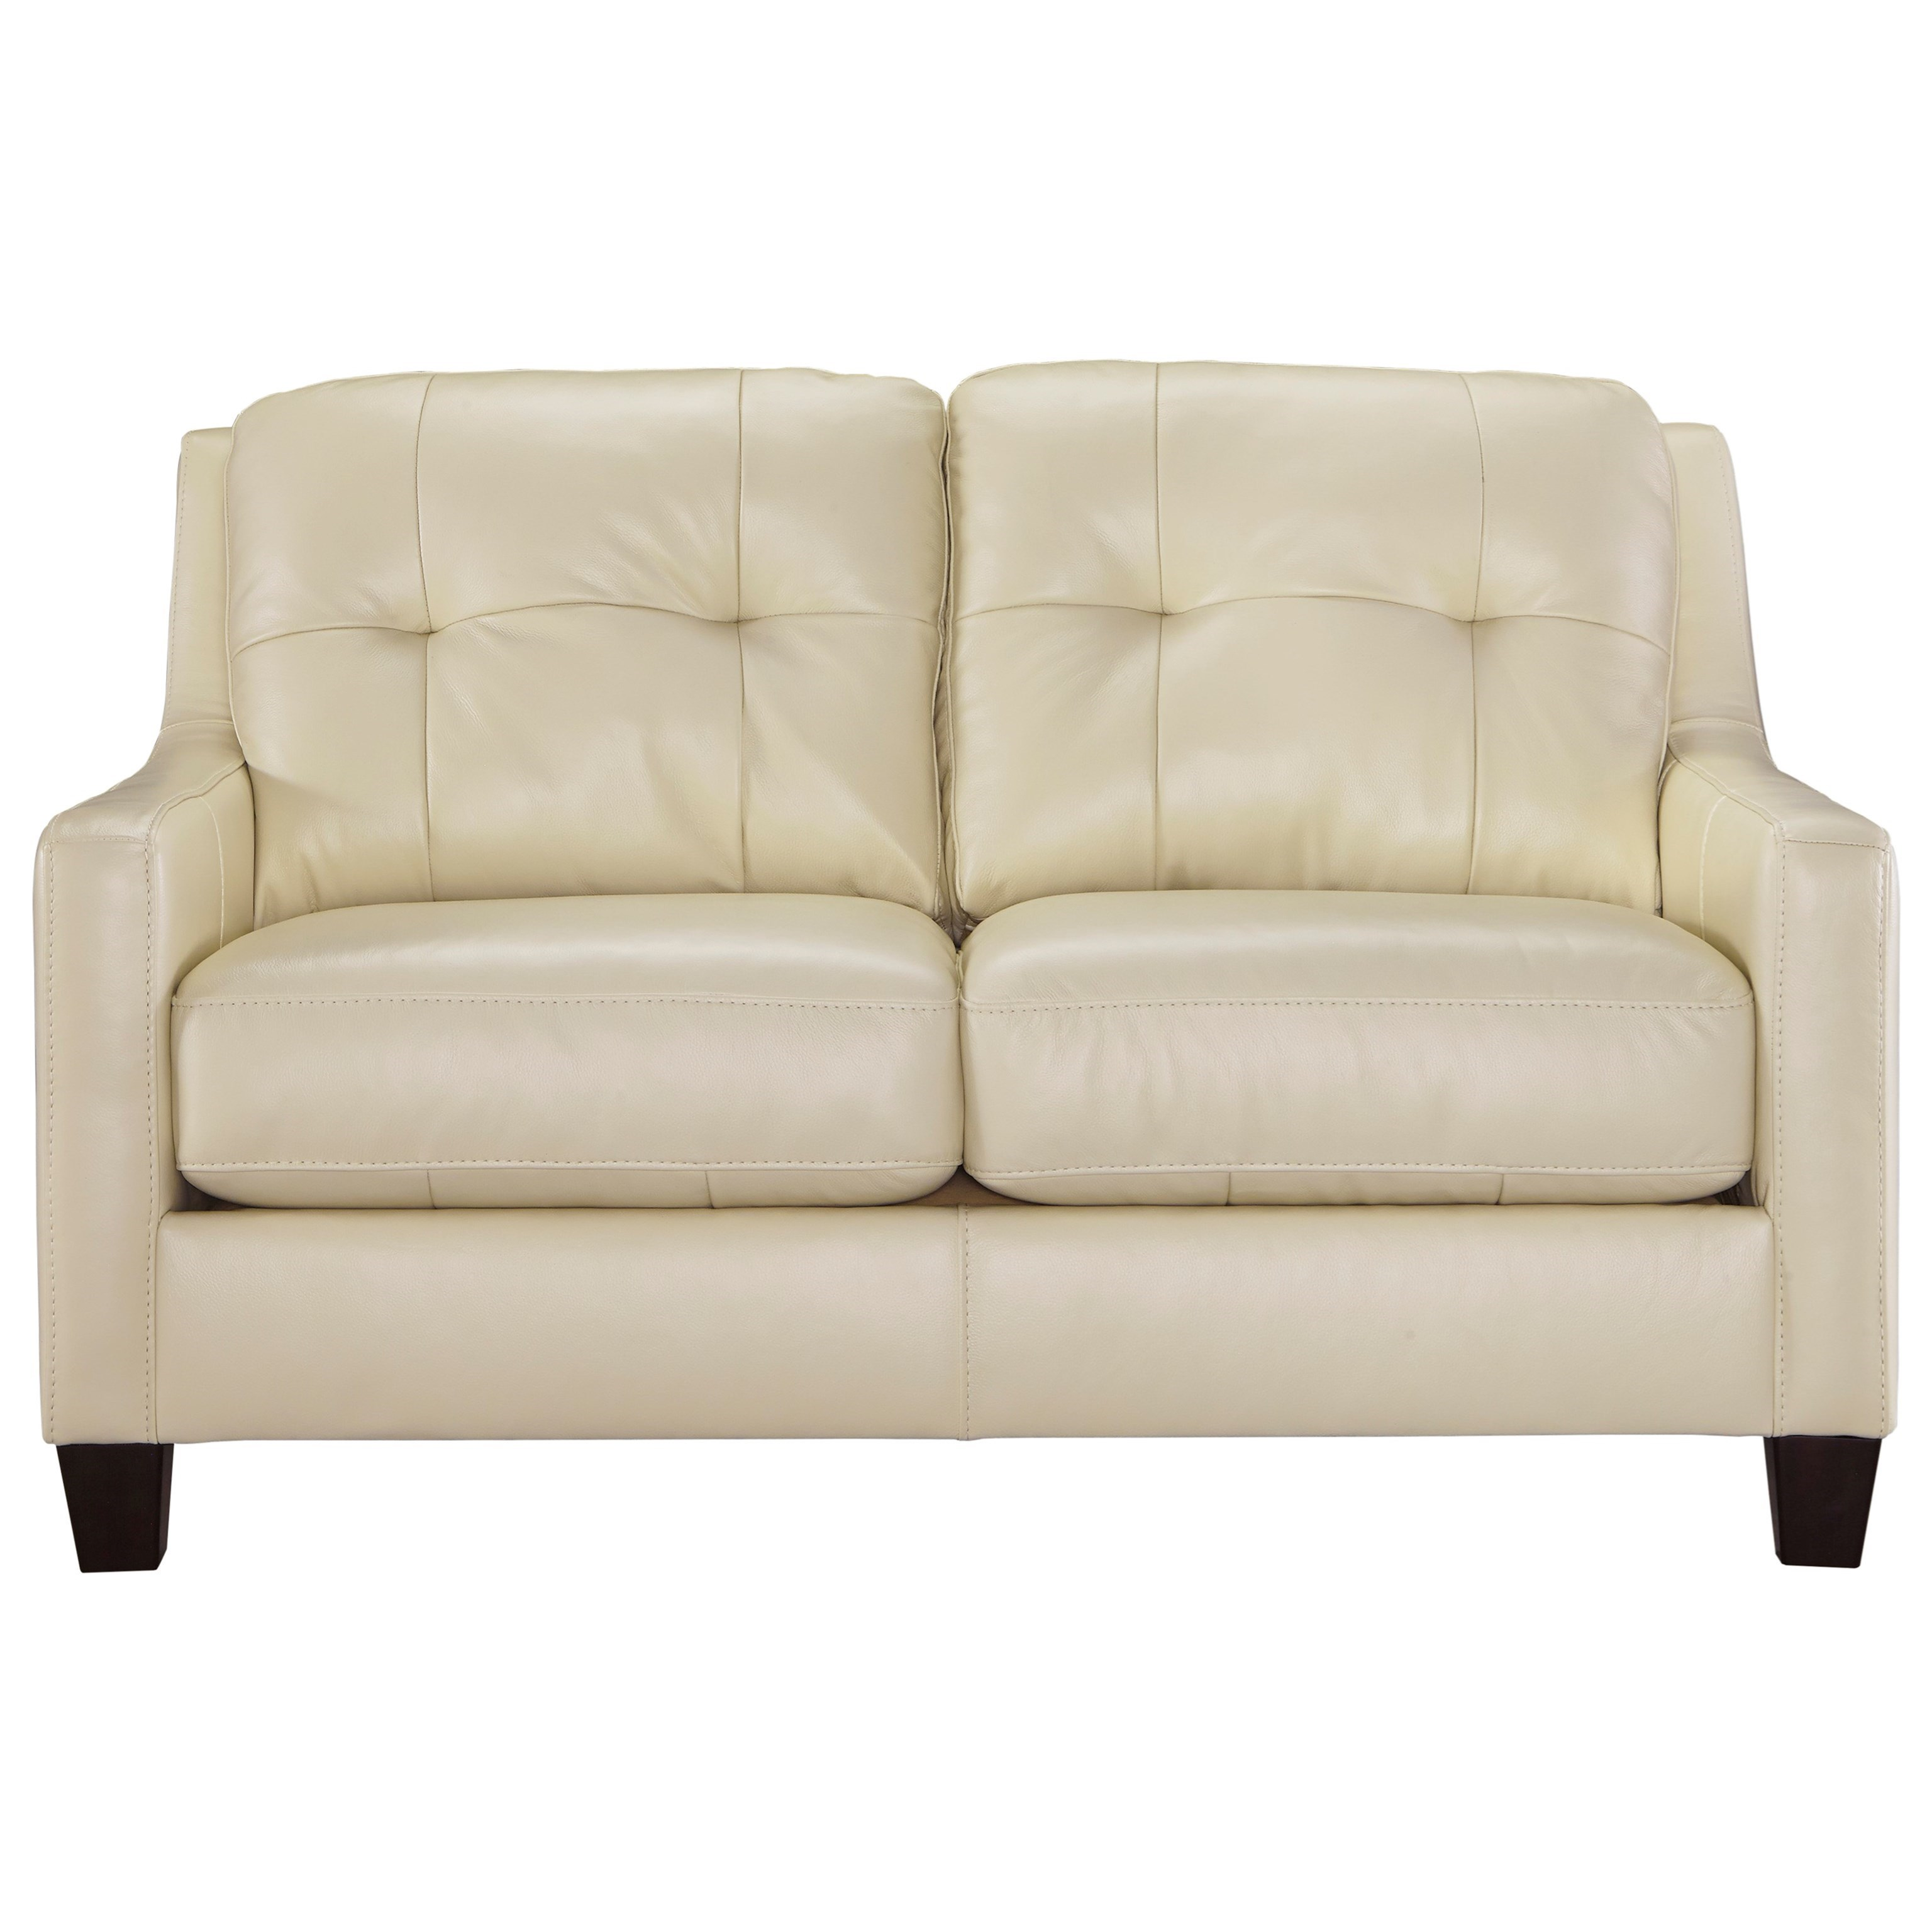 Ashley Signature Design O 39 Kean 5910235 Contemporary Leather Match Loveseat With Tufted Back